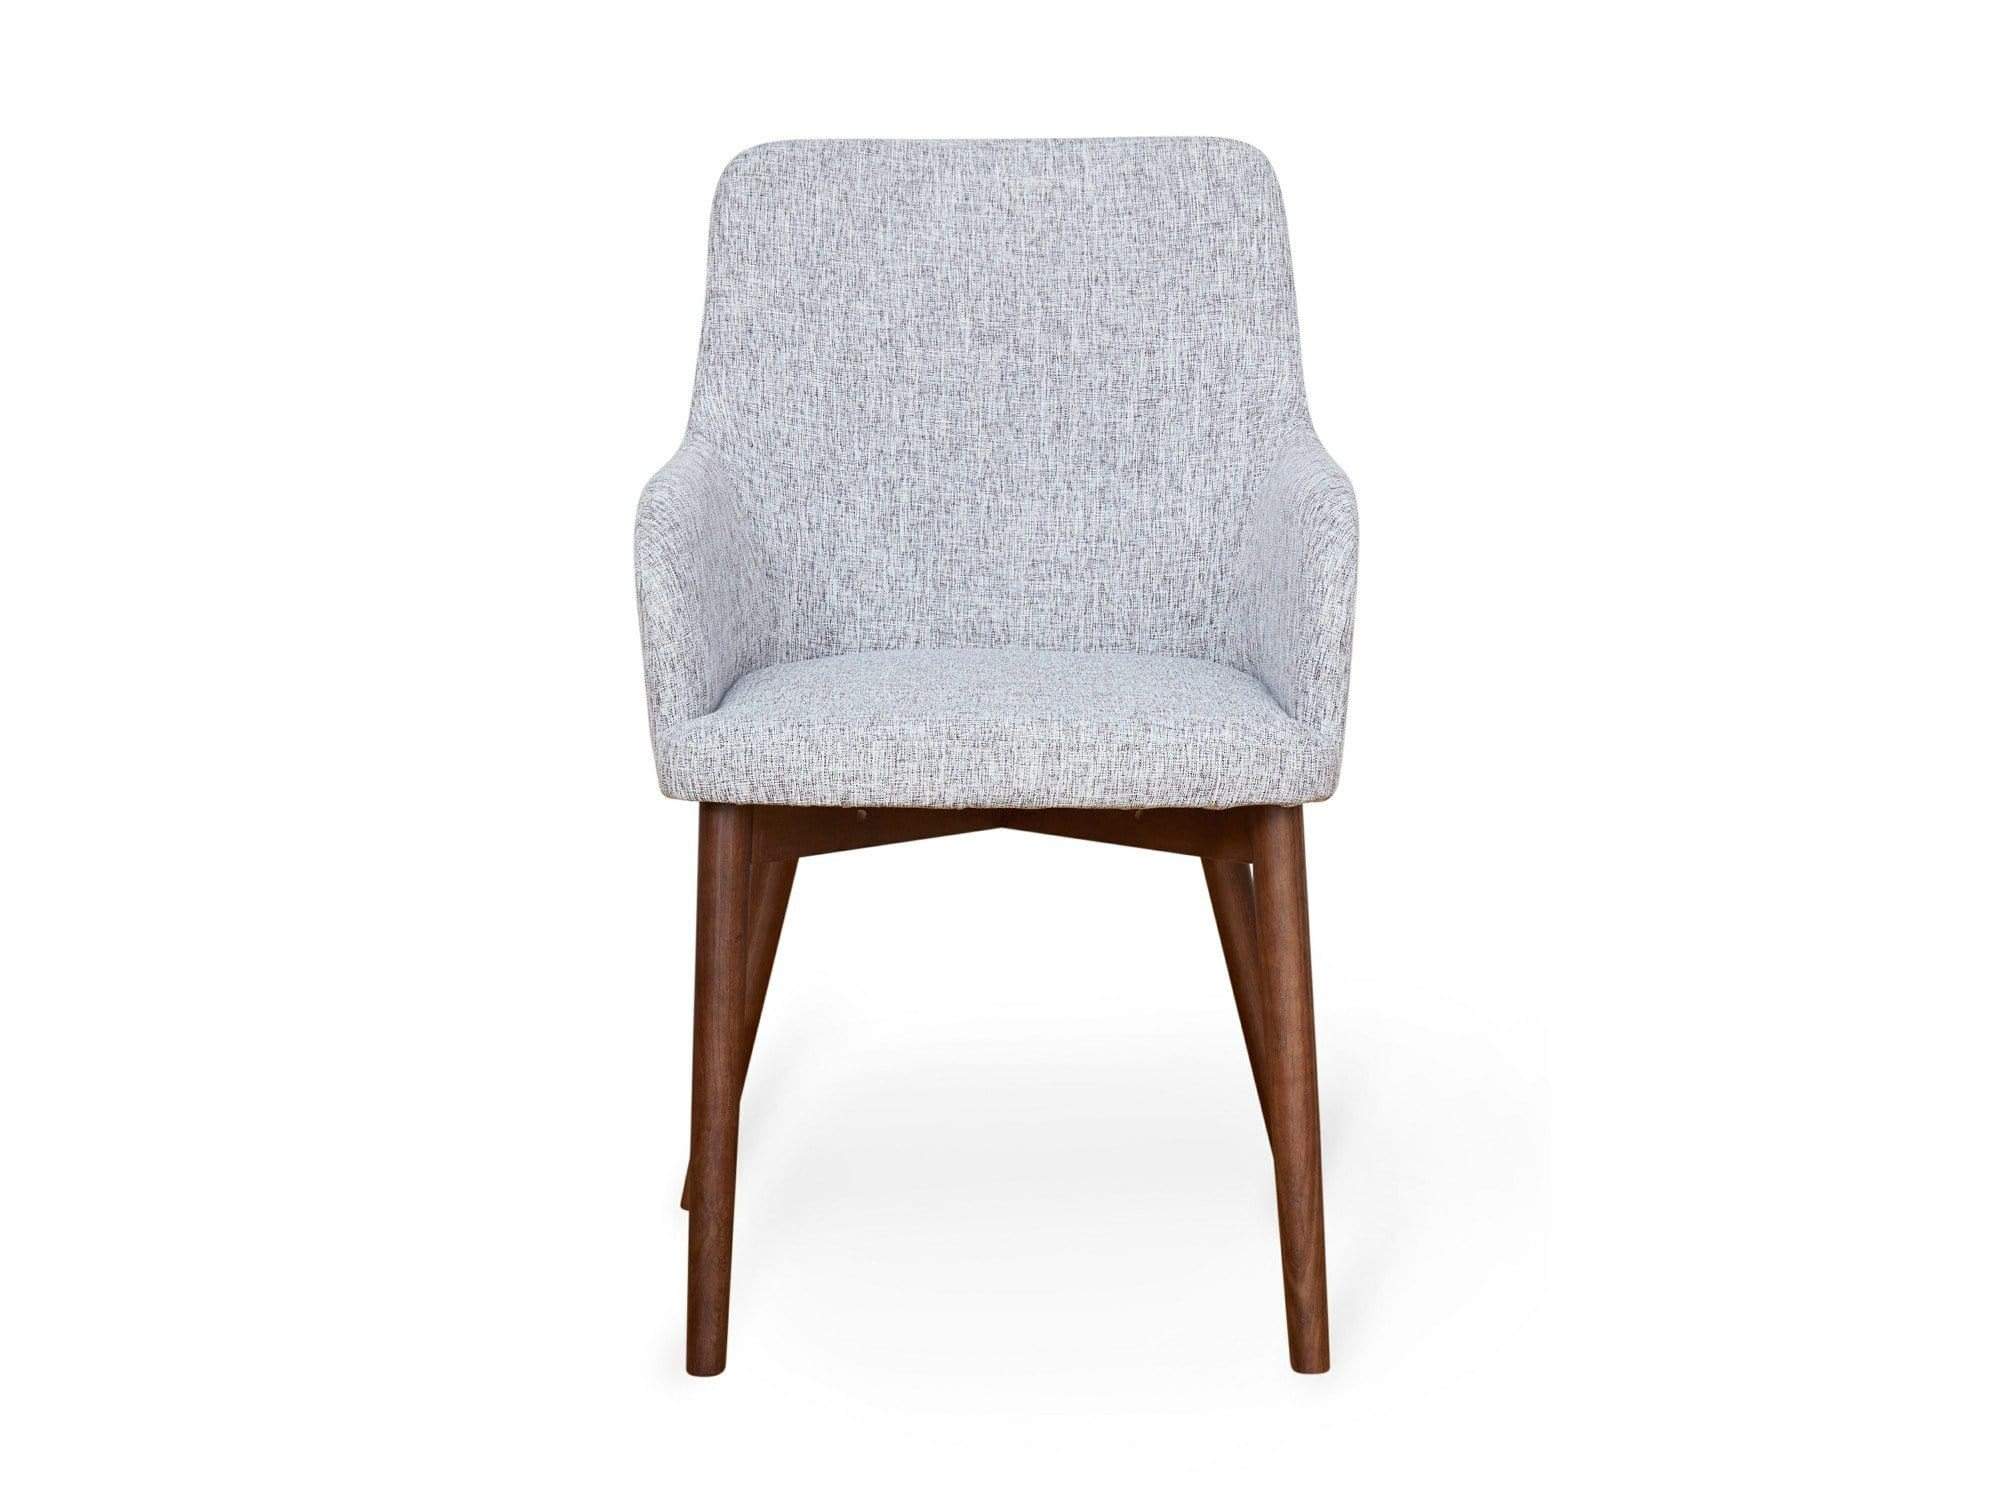 Contemporary dining chairs with light grey fabric upholstery and walnut coloured frame